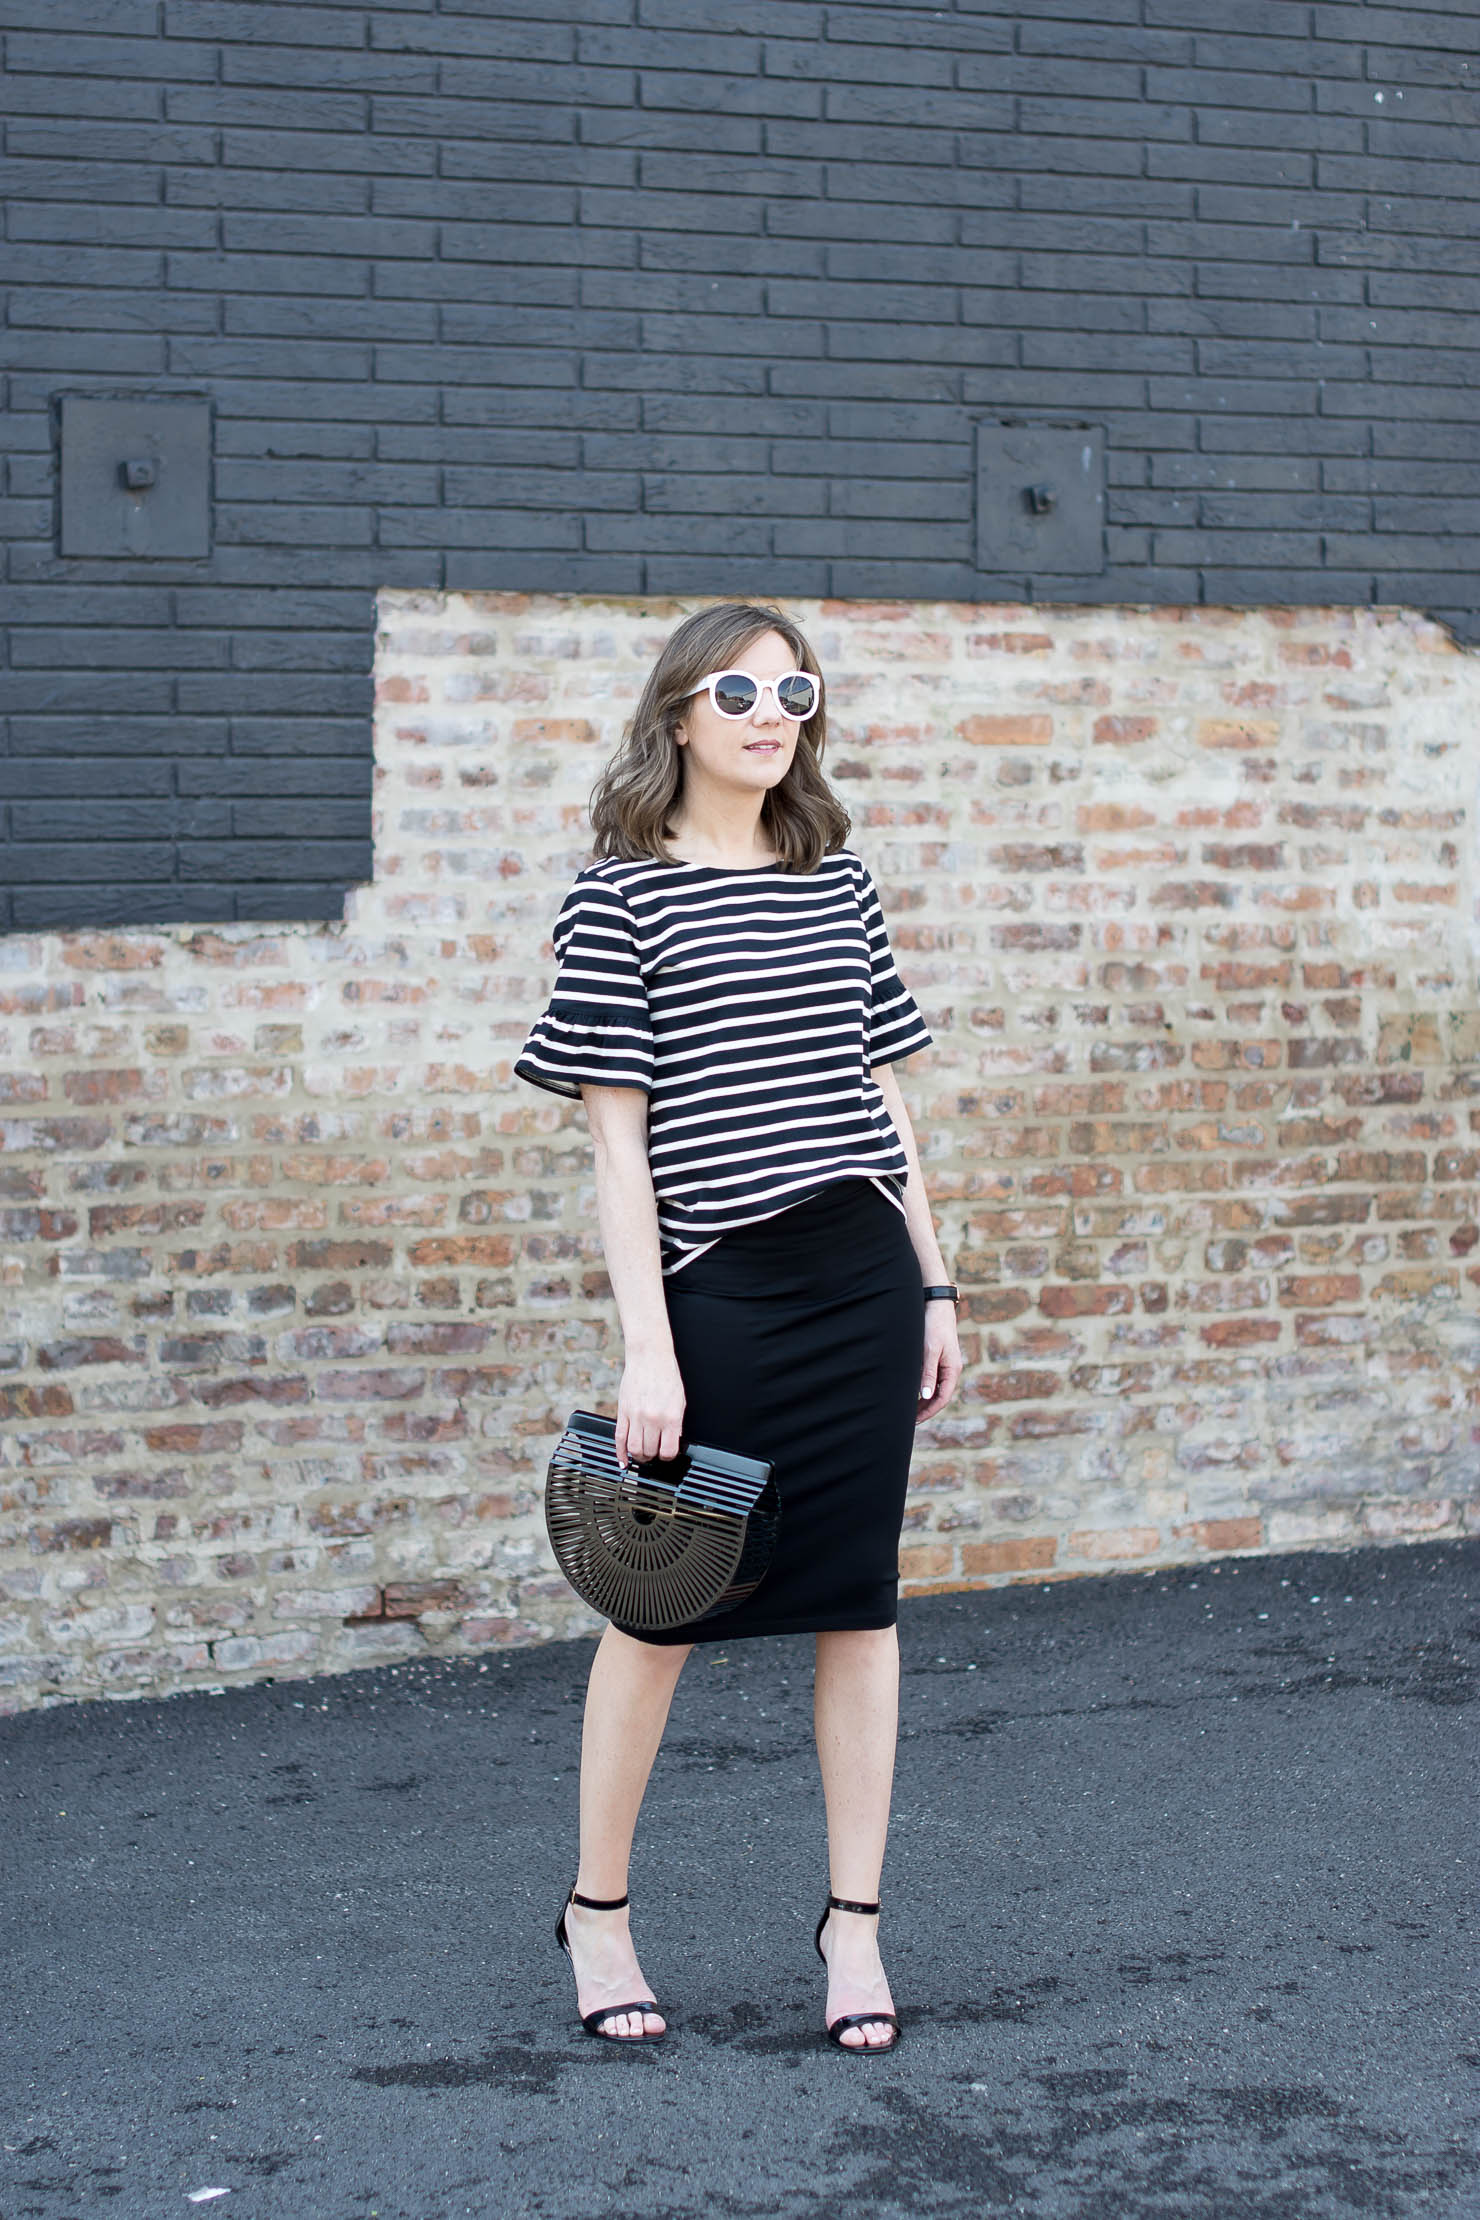 j crew black and white stripe ruffle sleeve tee, black zara pencil skirt, black acrylic cult gaia bag, white round sunnies, celine sunglasses dupe, black and white outfit